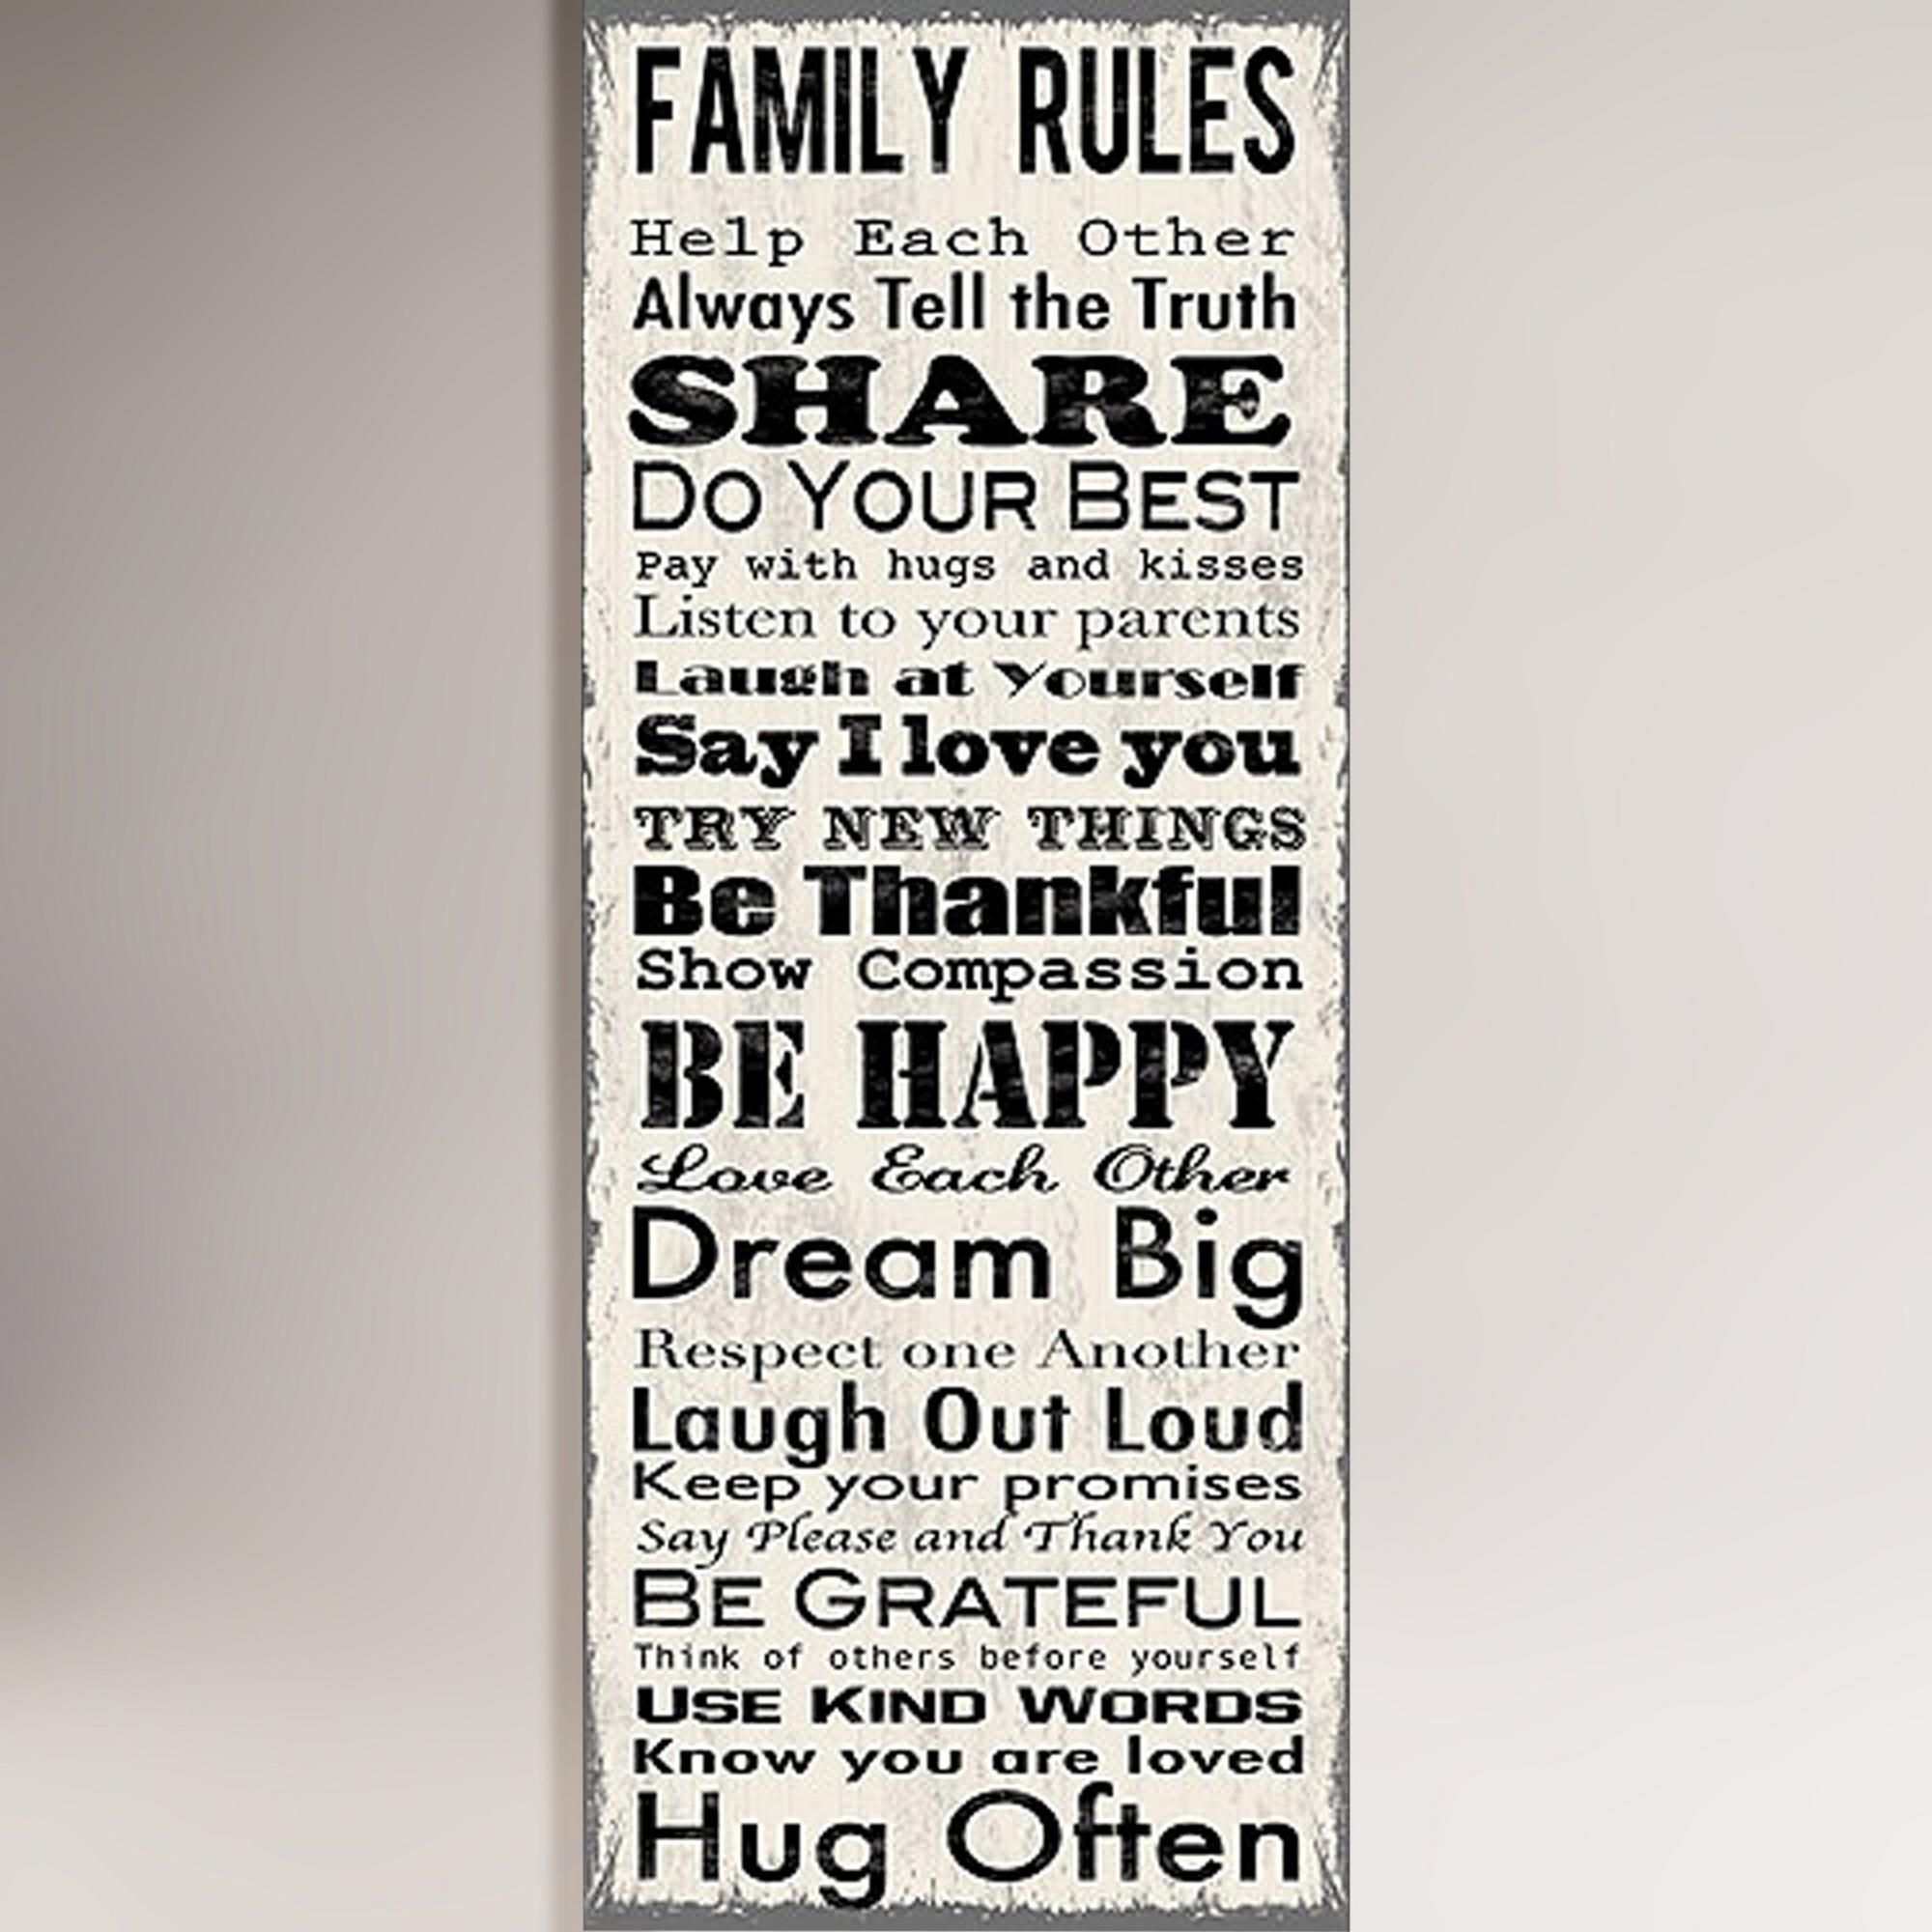 Family rules canvas wall art decal